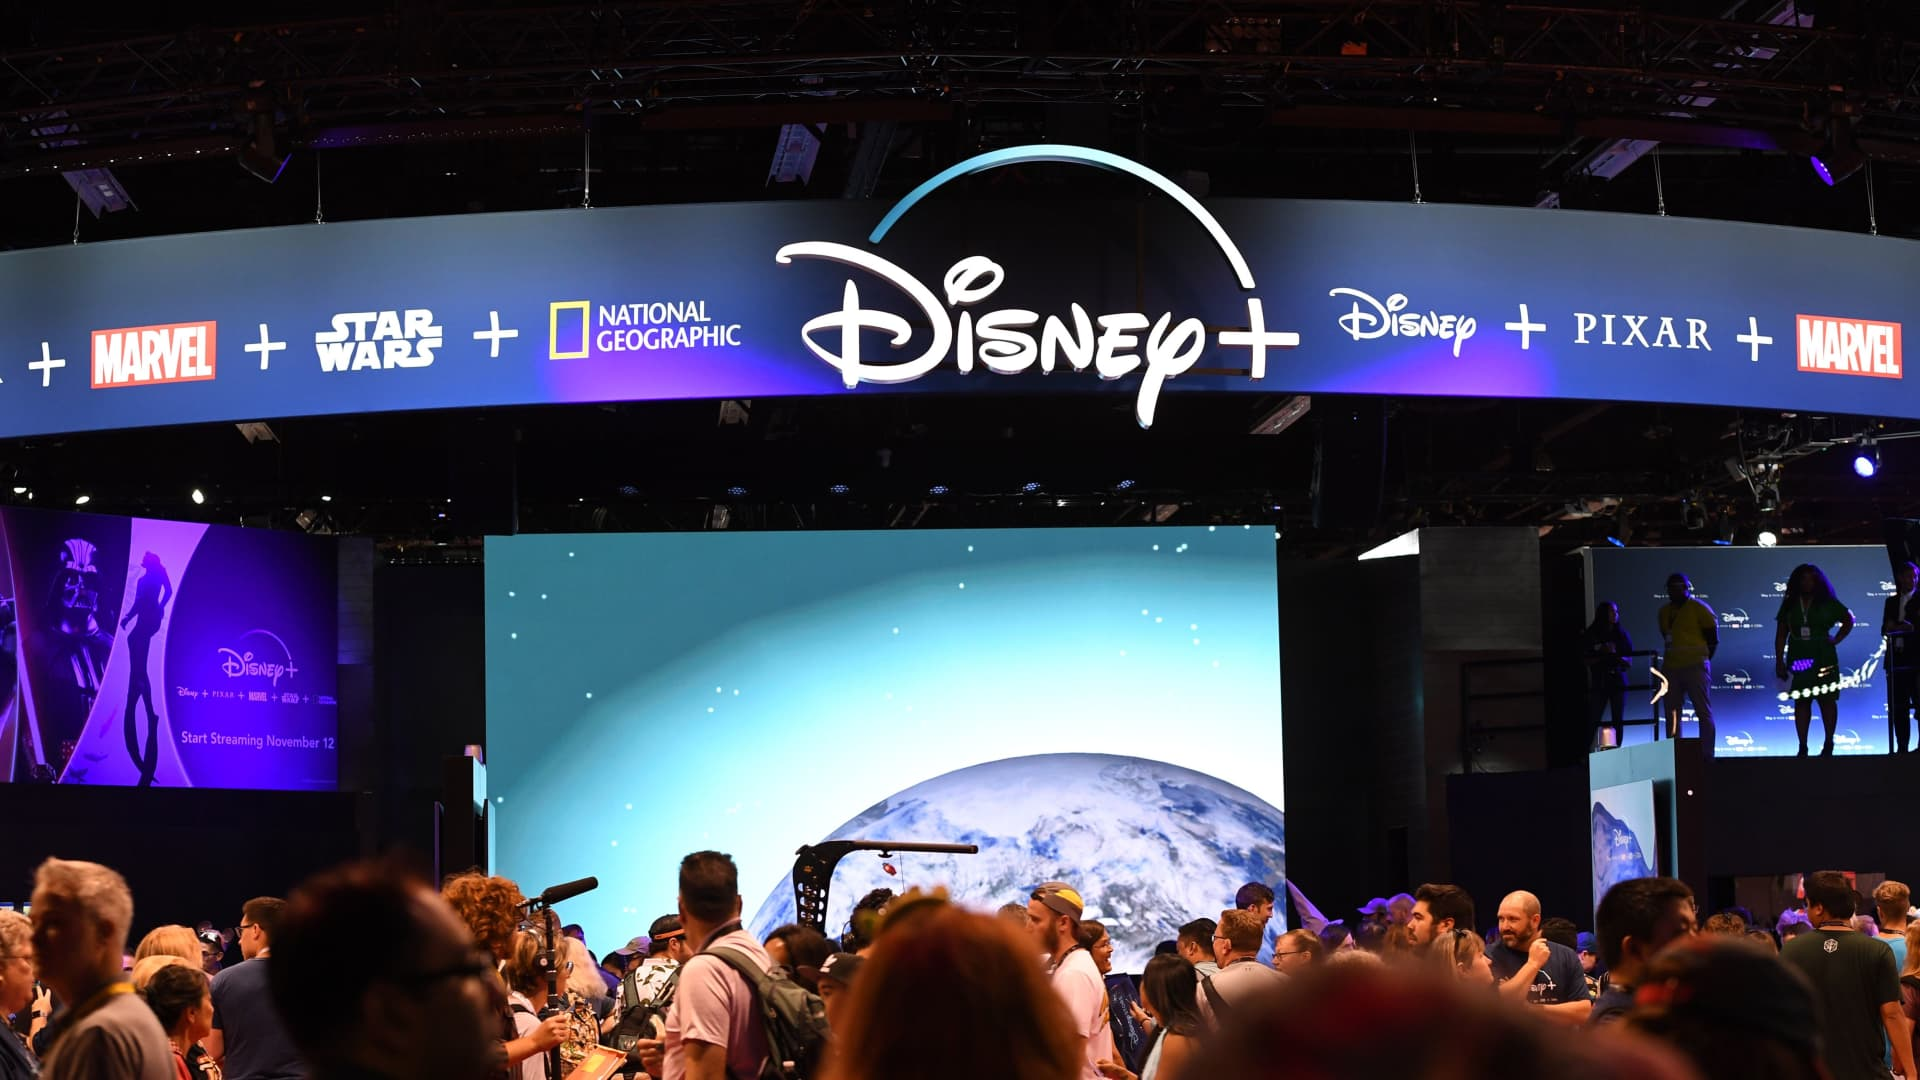 Attendees visit the Disney+ streaming service booth at the D23 Expo on August 23, 2019 at the Anaheim Convention Center in Anaheim, California.